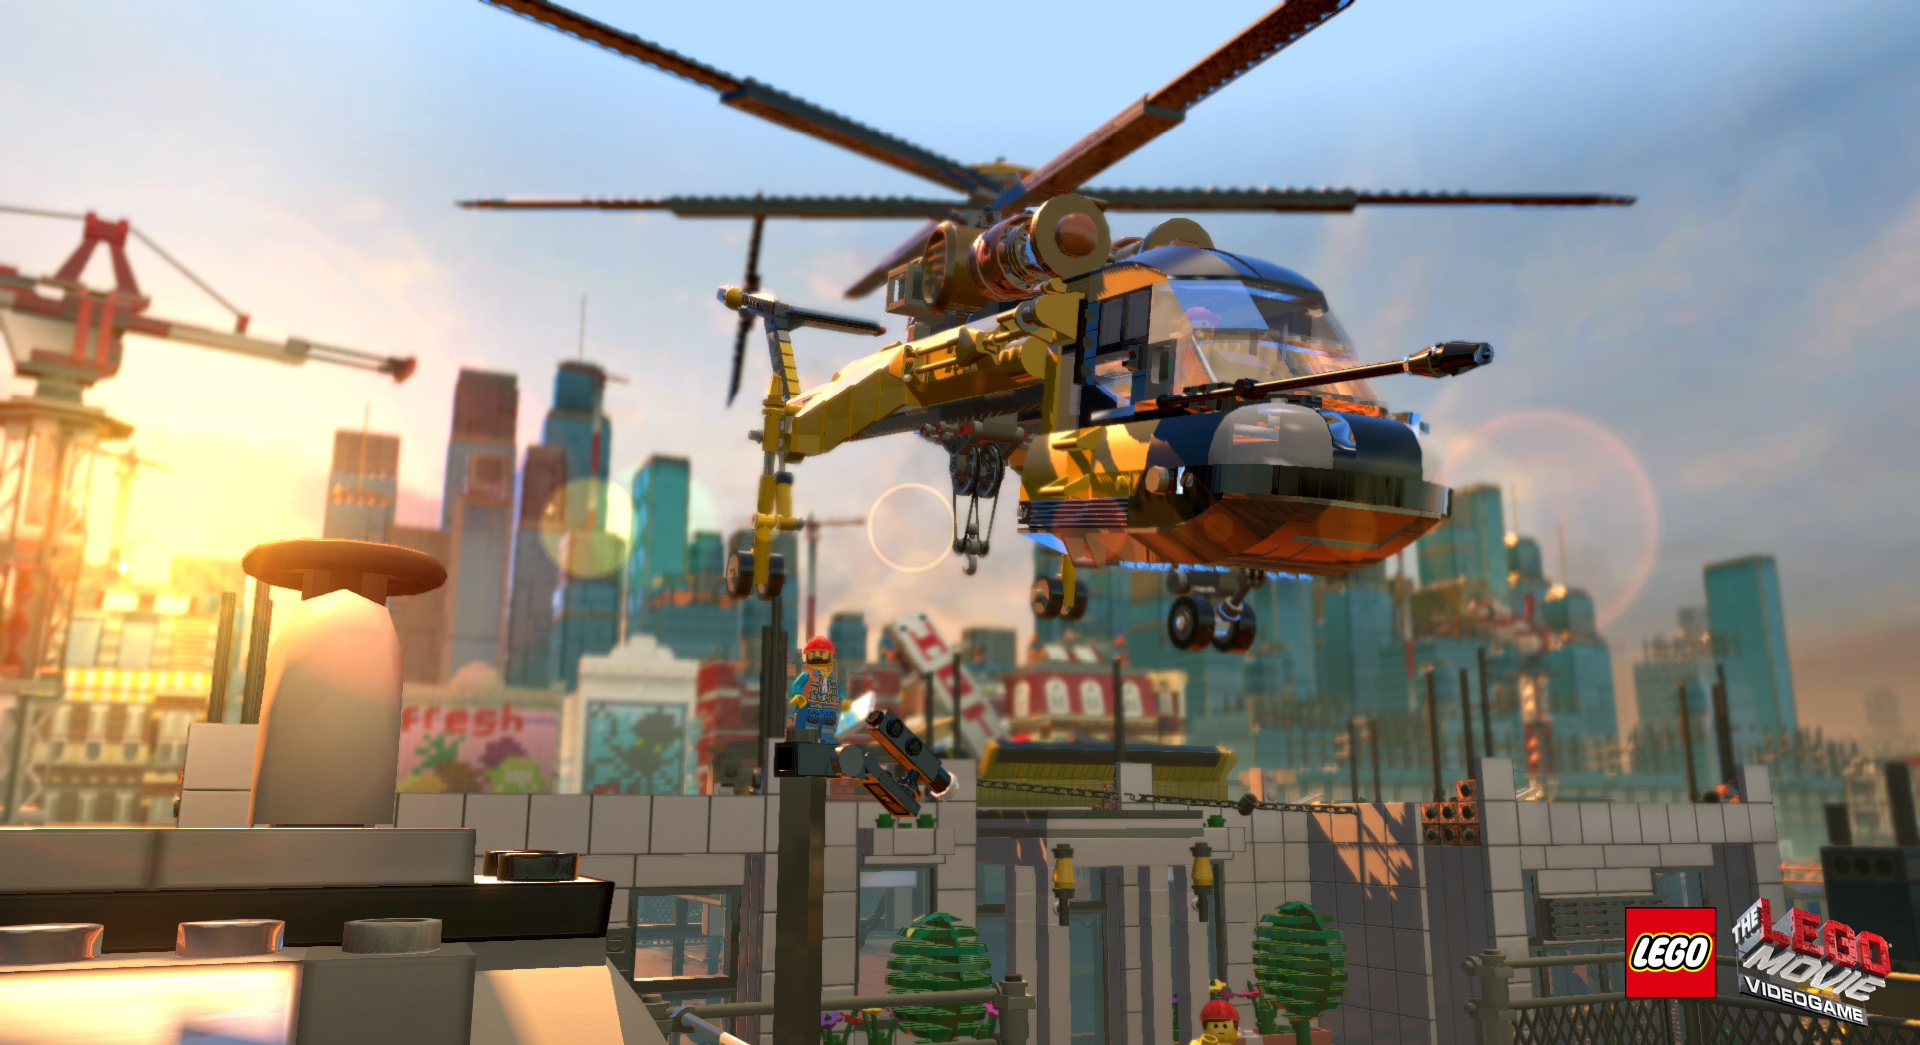 UK Gaming Charts – The LEGO Movie Videogame Holds Top Spot After COD: Ghosts Free Weekend